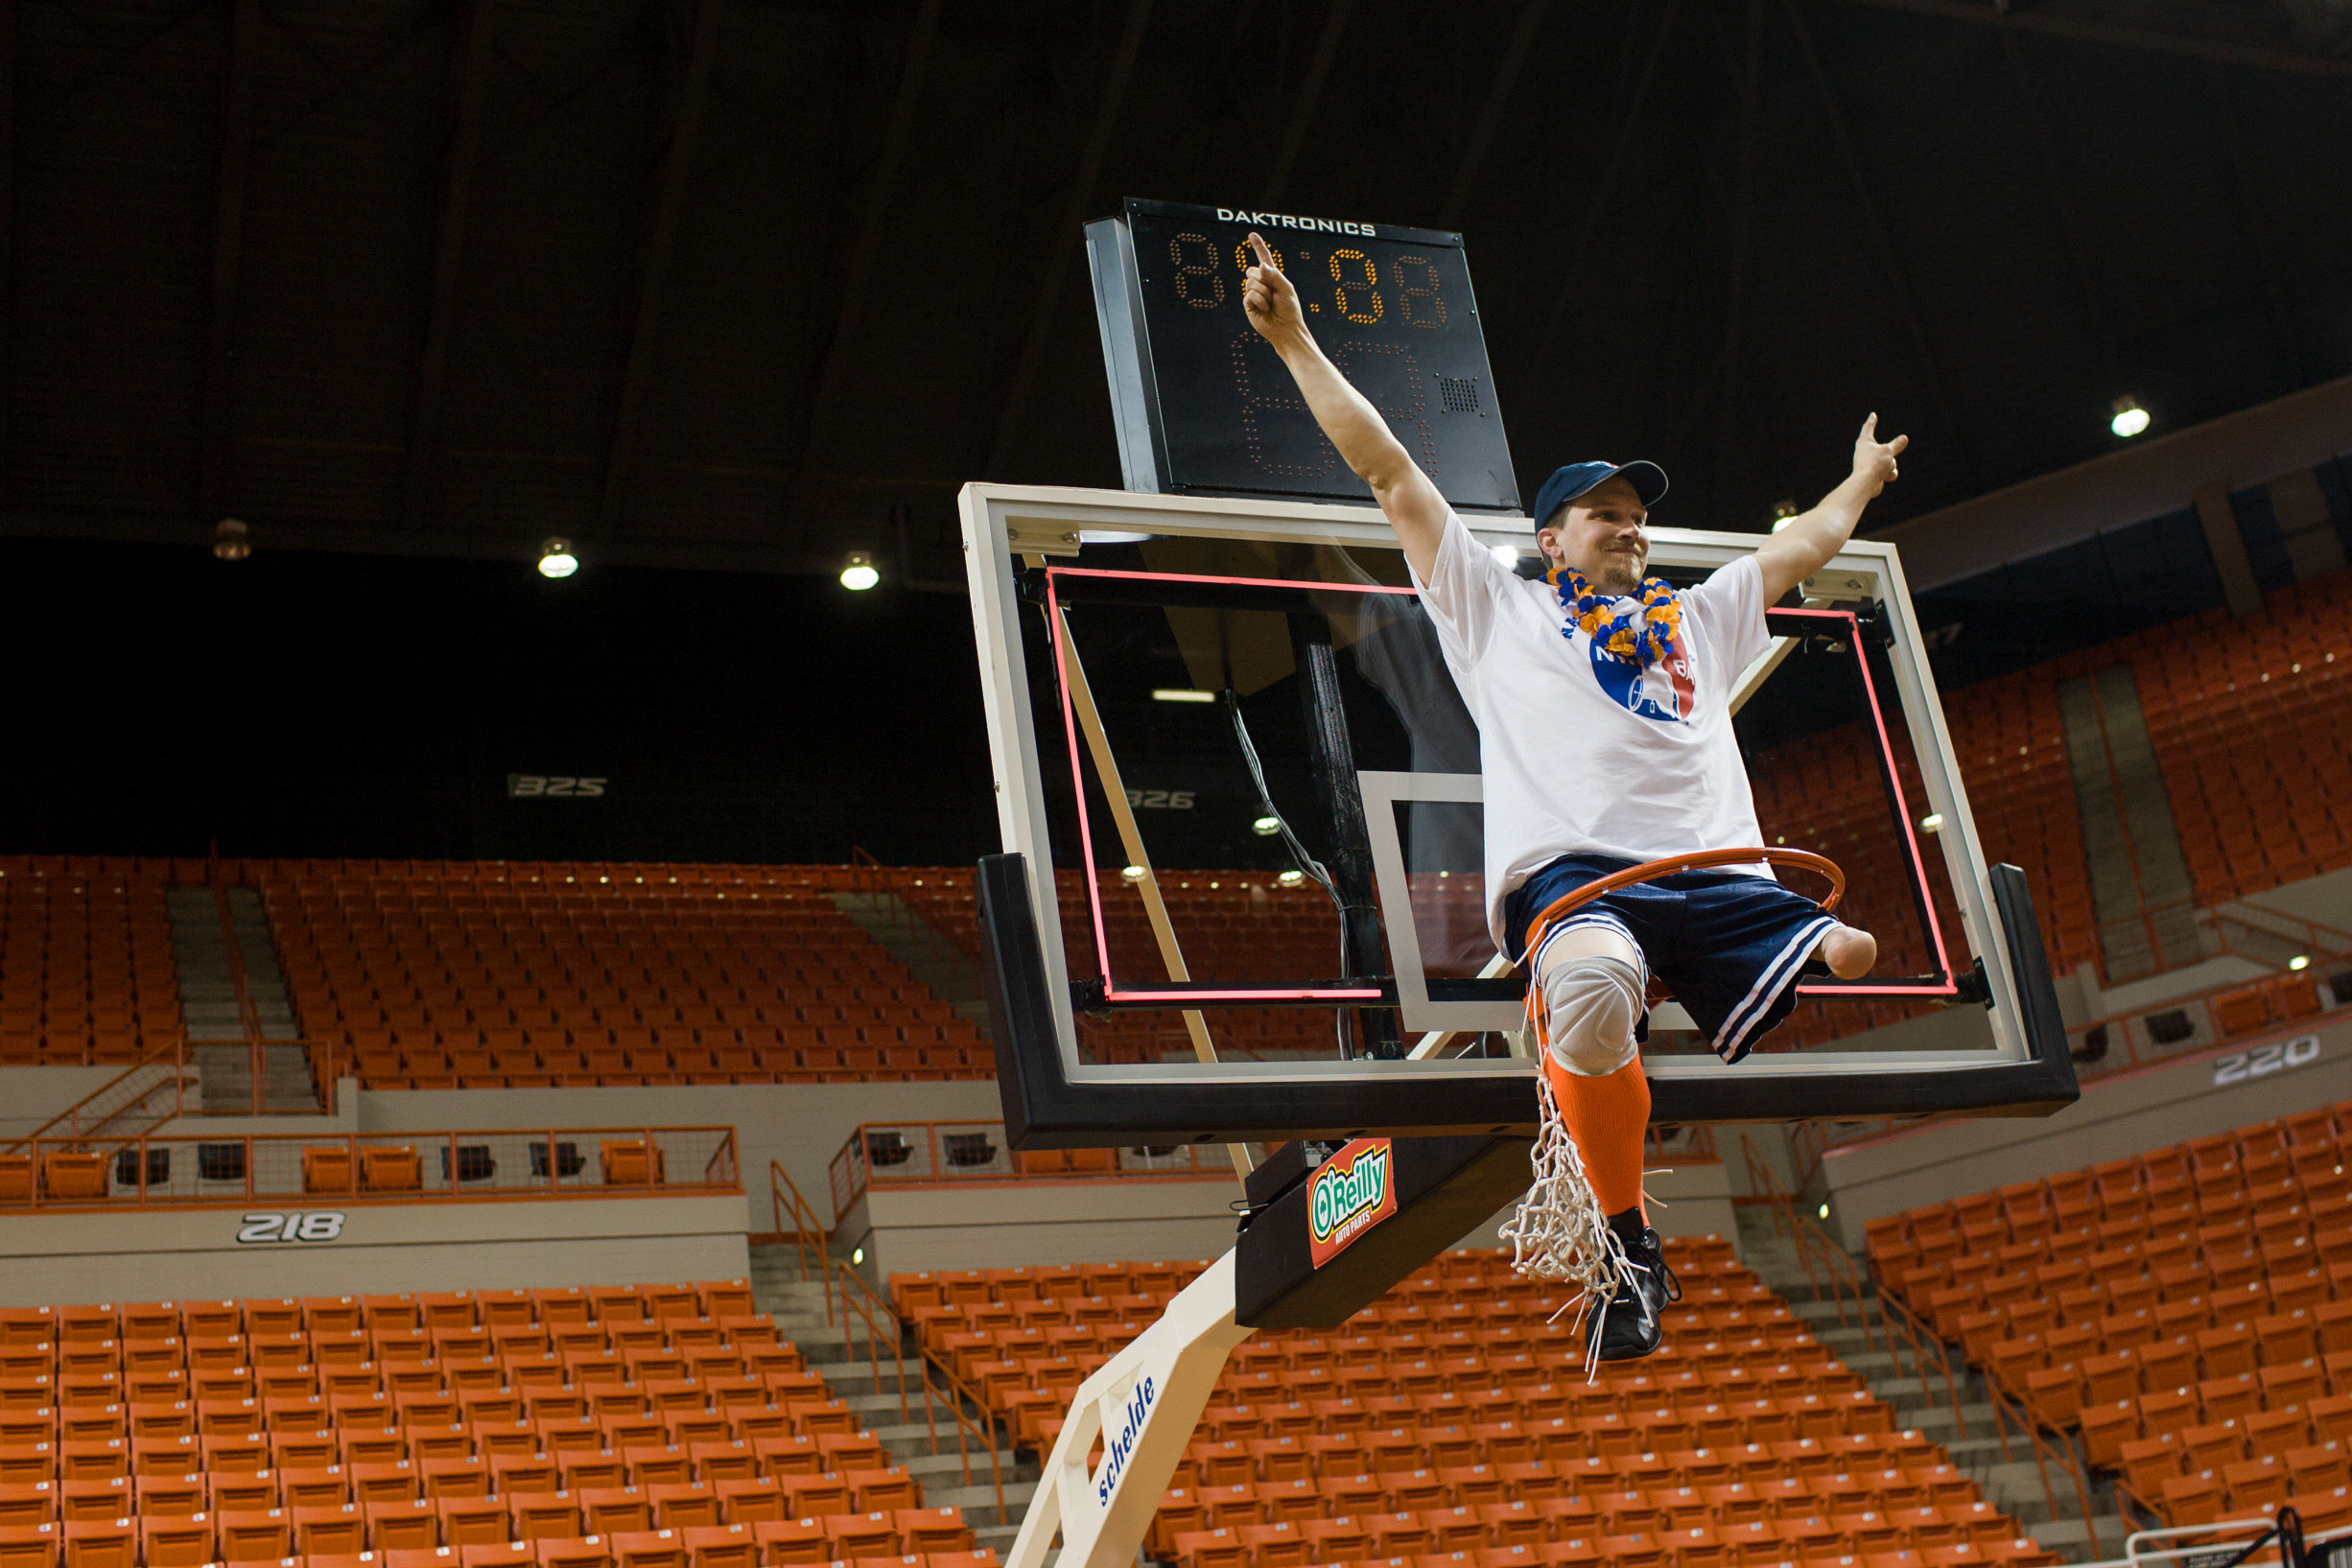 Drew Dokos celebrates the team's win atop the basket. The championship title was the first for the Illini men since 2001. It was also the first time since 1990 that both the Illini men and women have claimed titles.